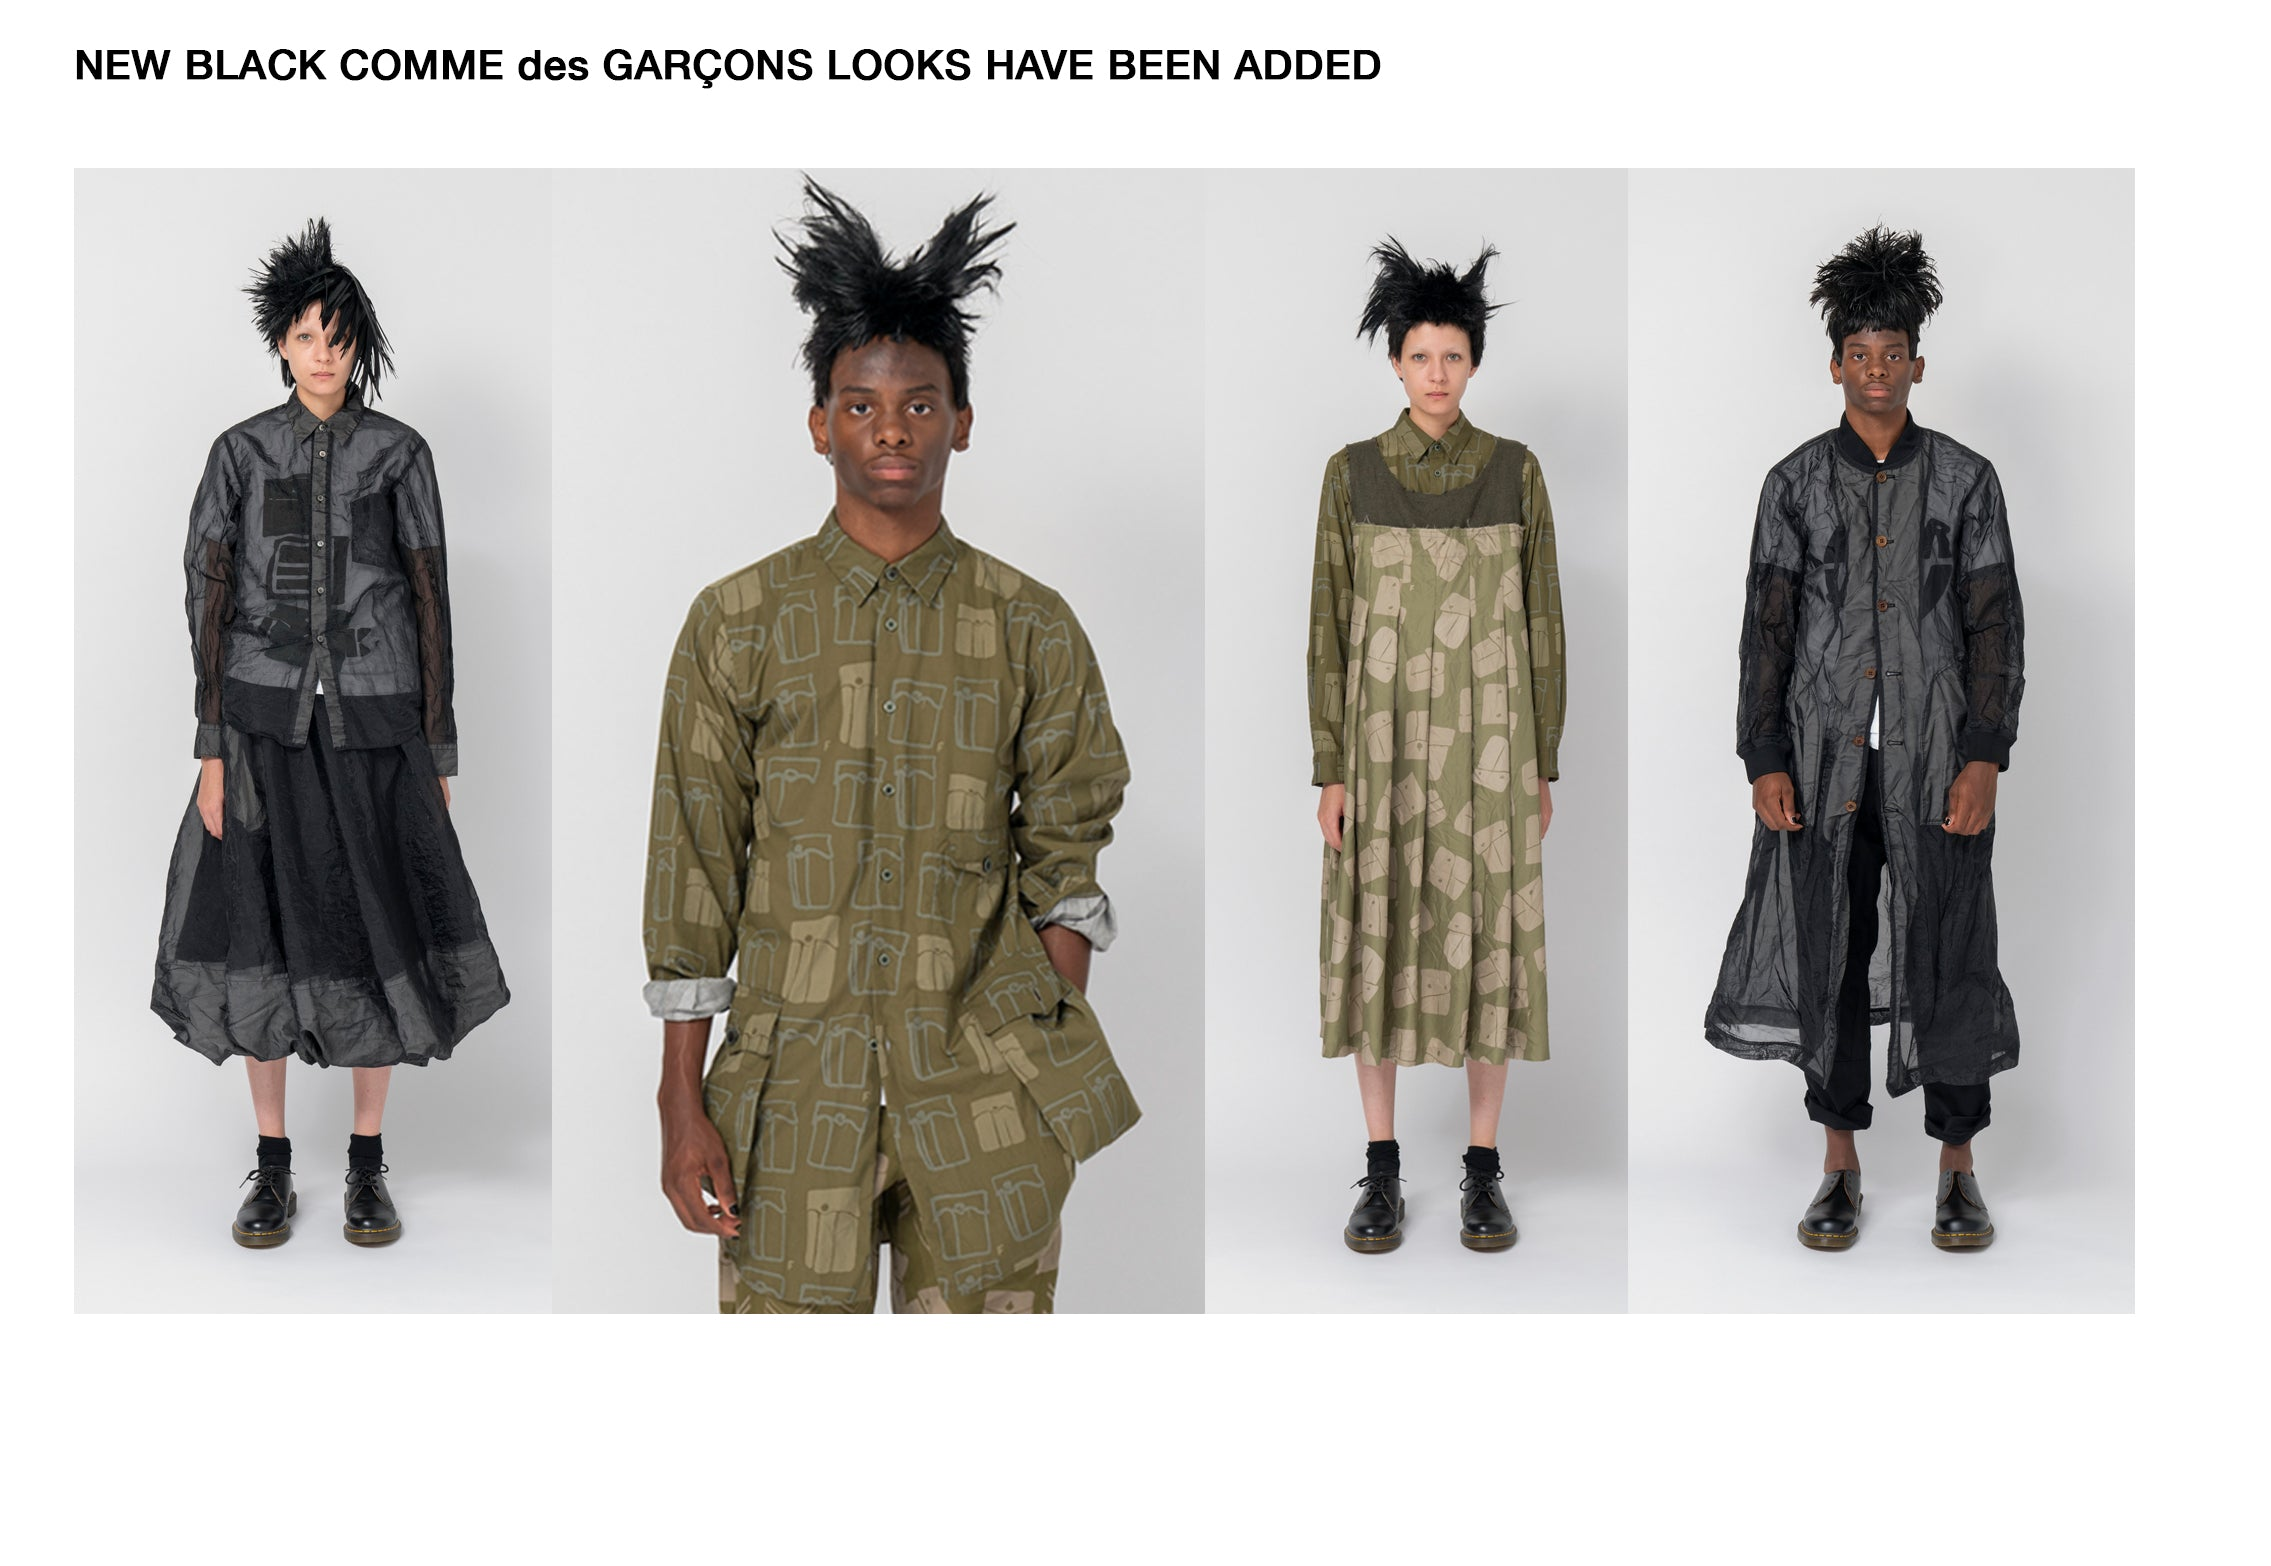 NEW BLACK COMME des GARÇONS LOOKS HAVE BEEN ADDED